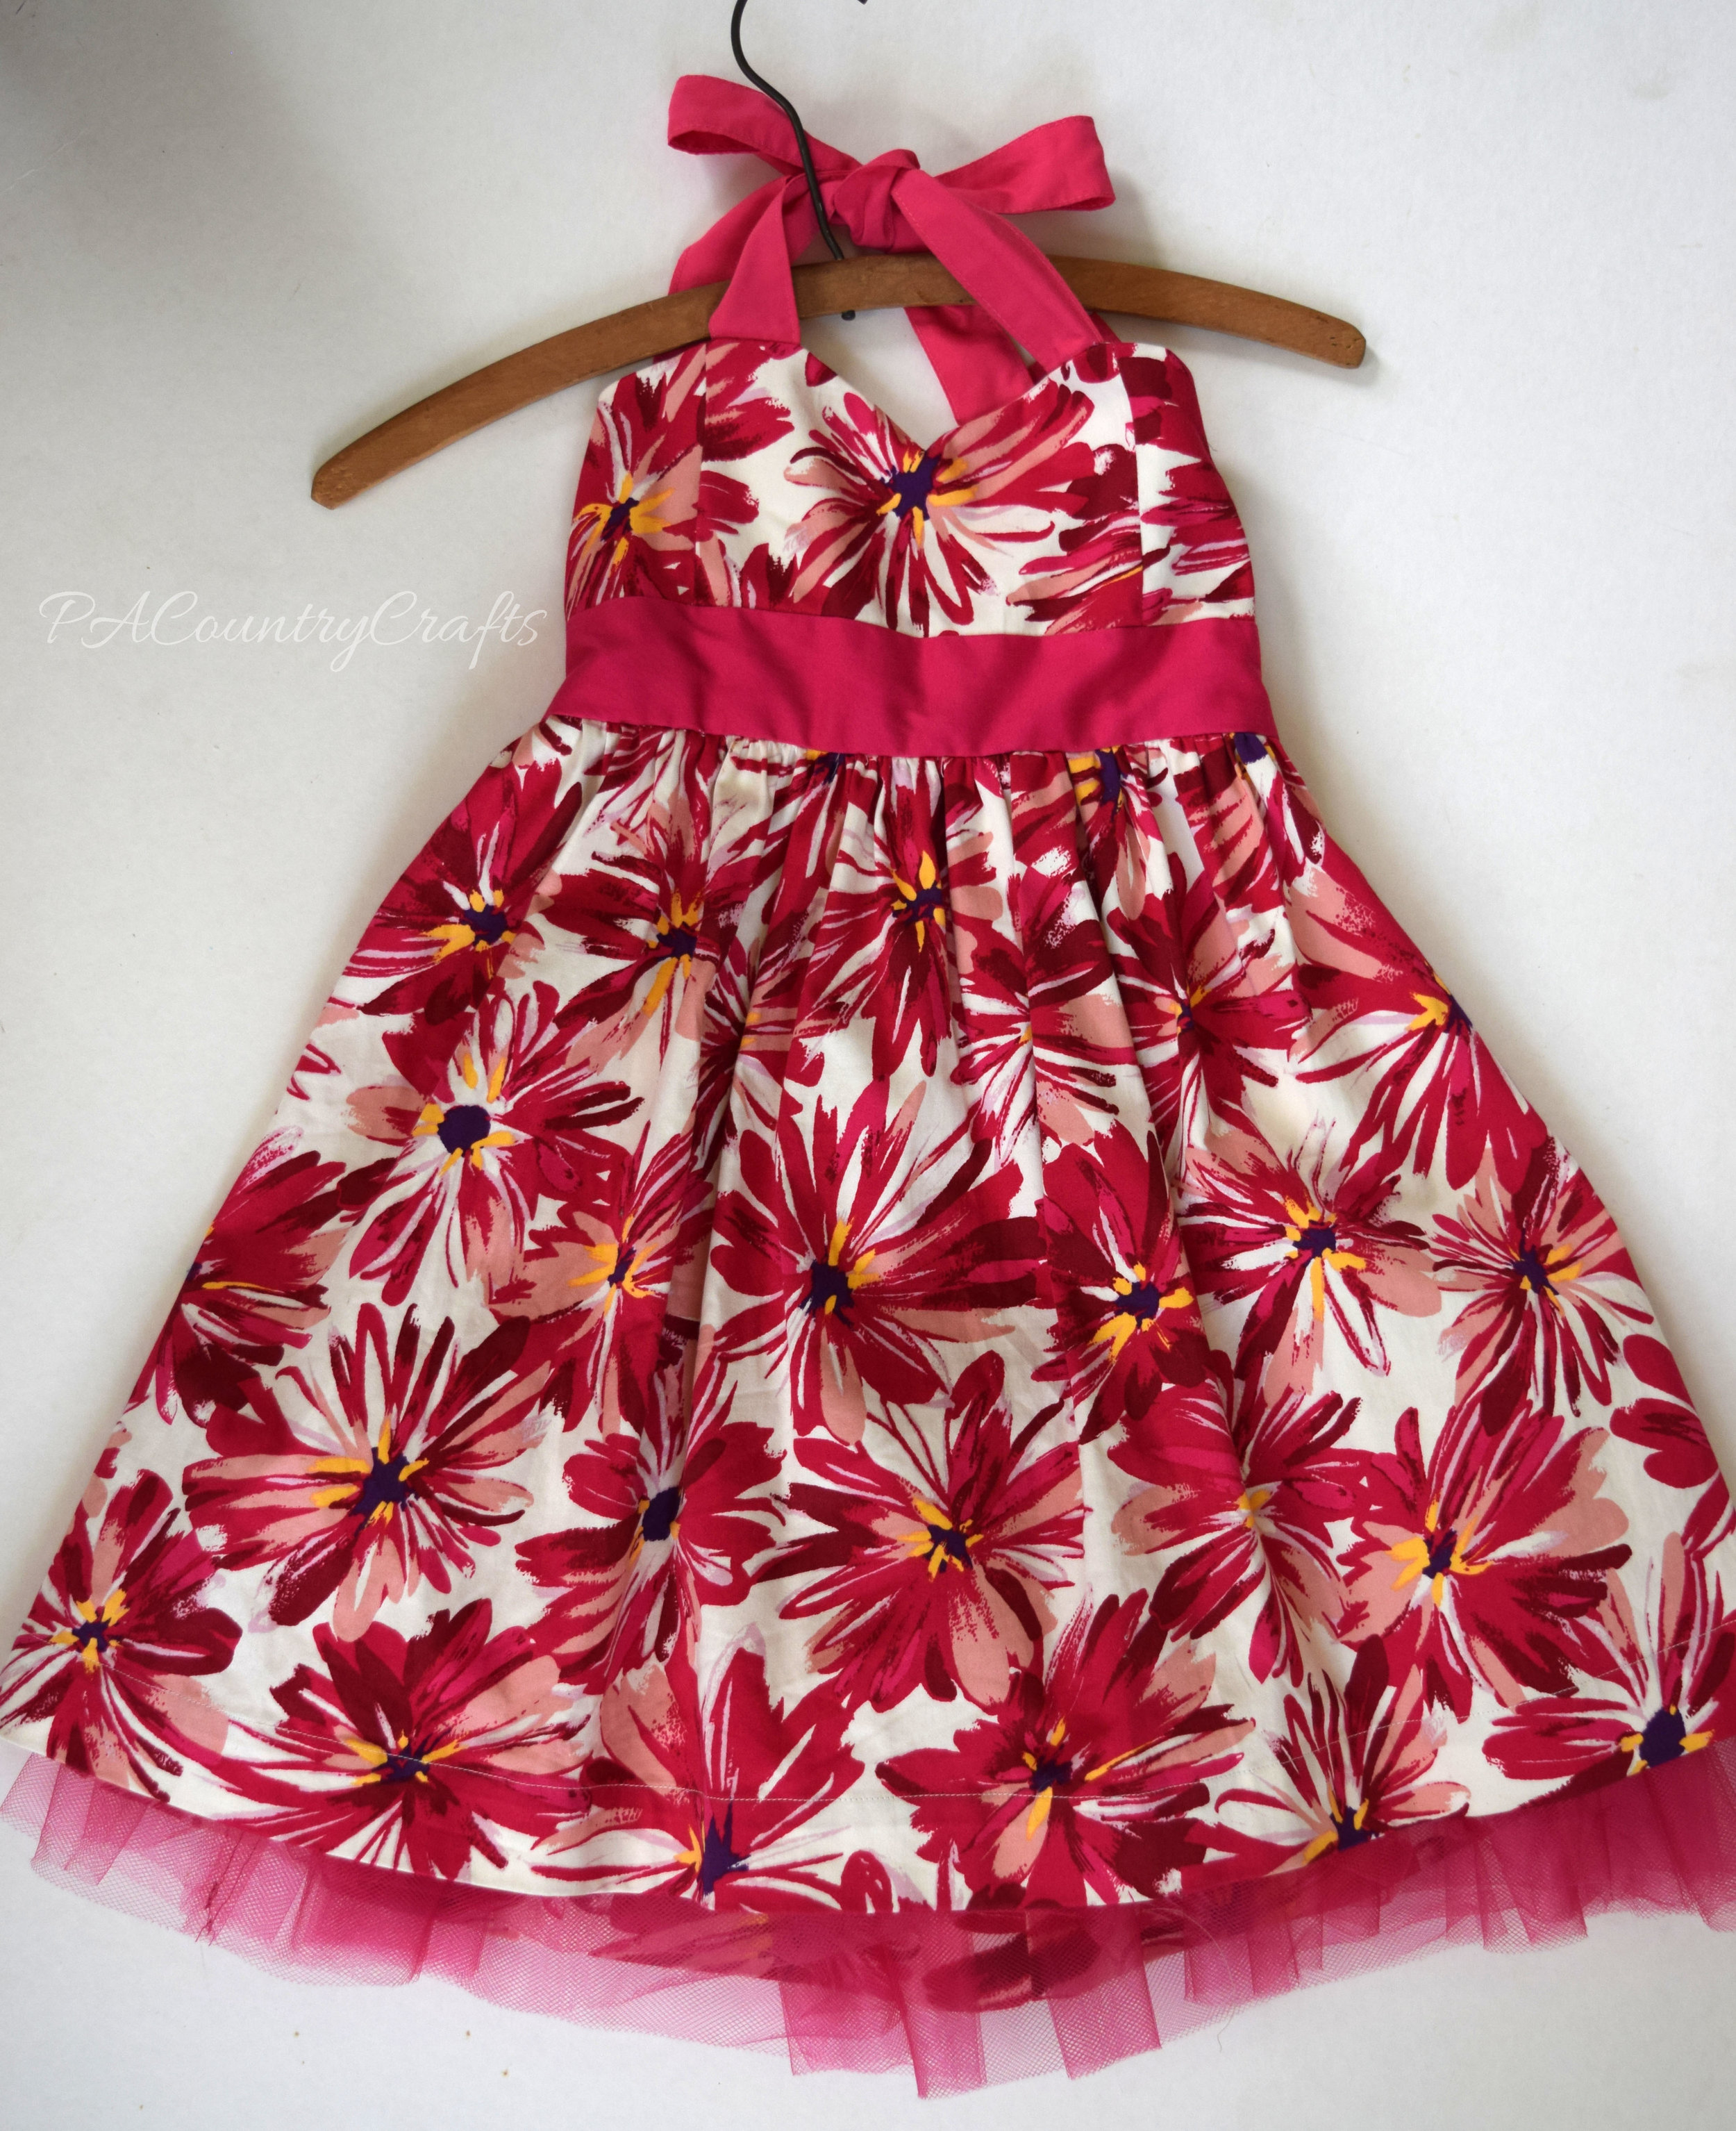 refashioned girls' halter dress